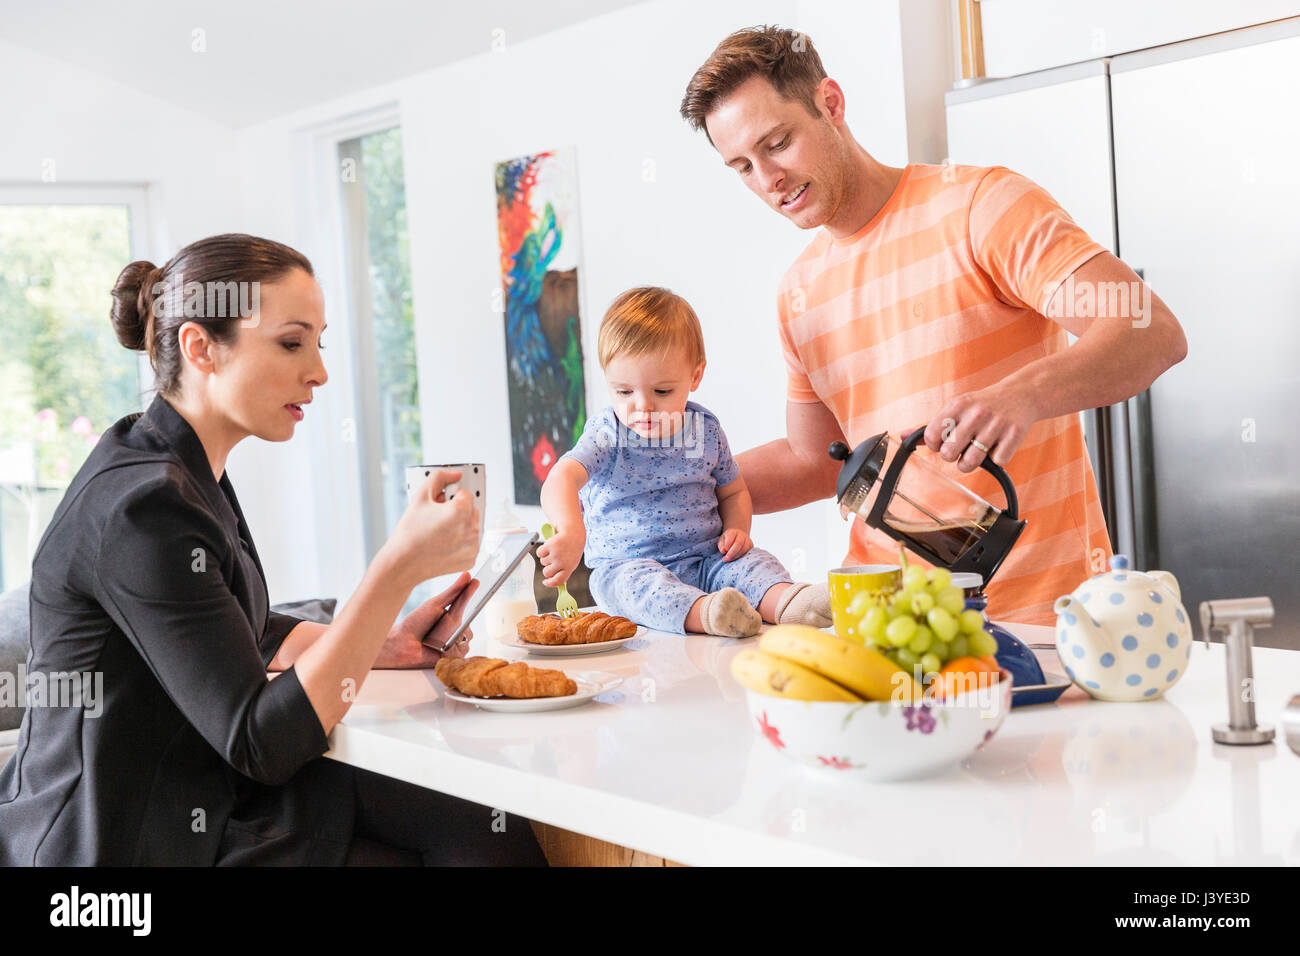 Father makes breakfast for working mum and toddler son - Stock Image